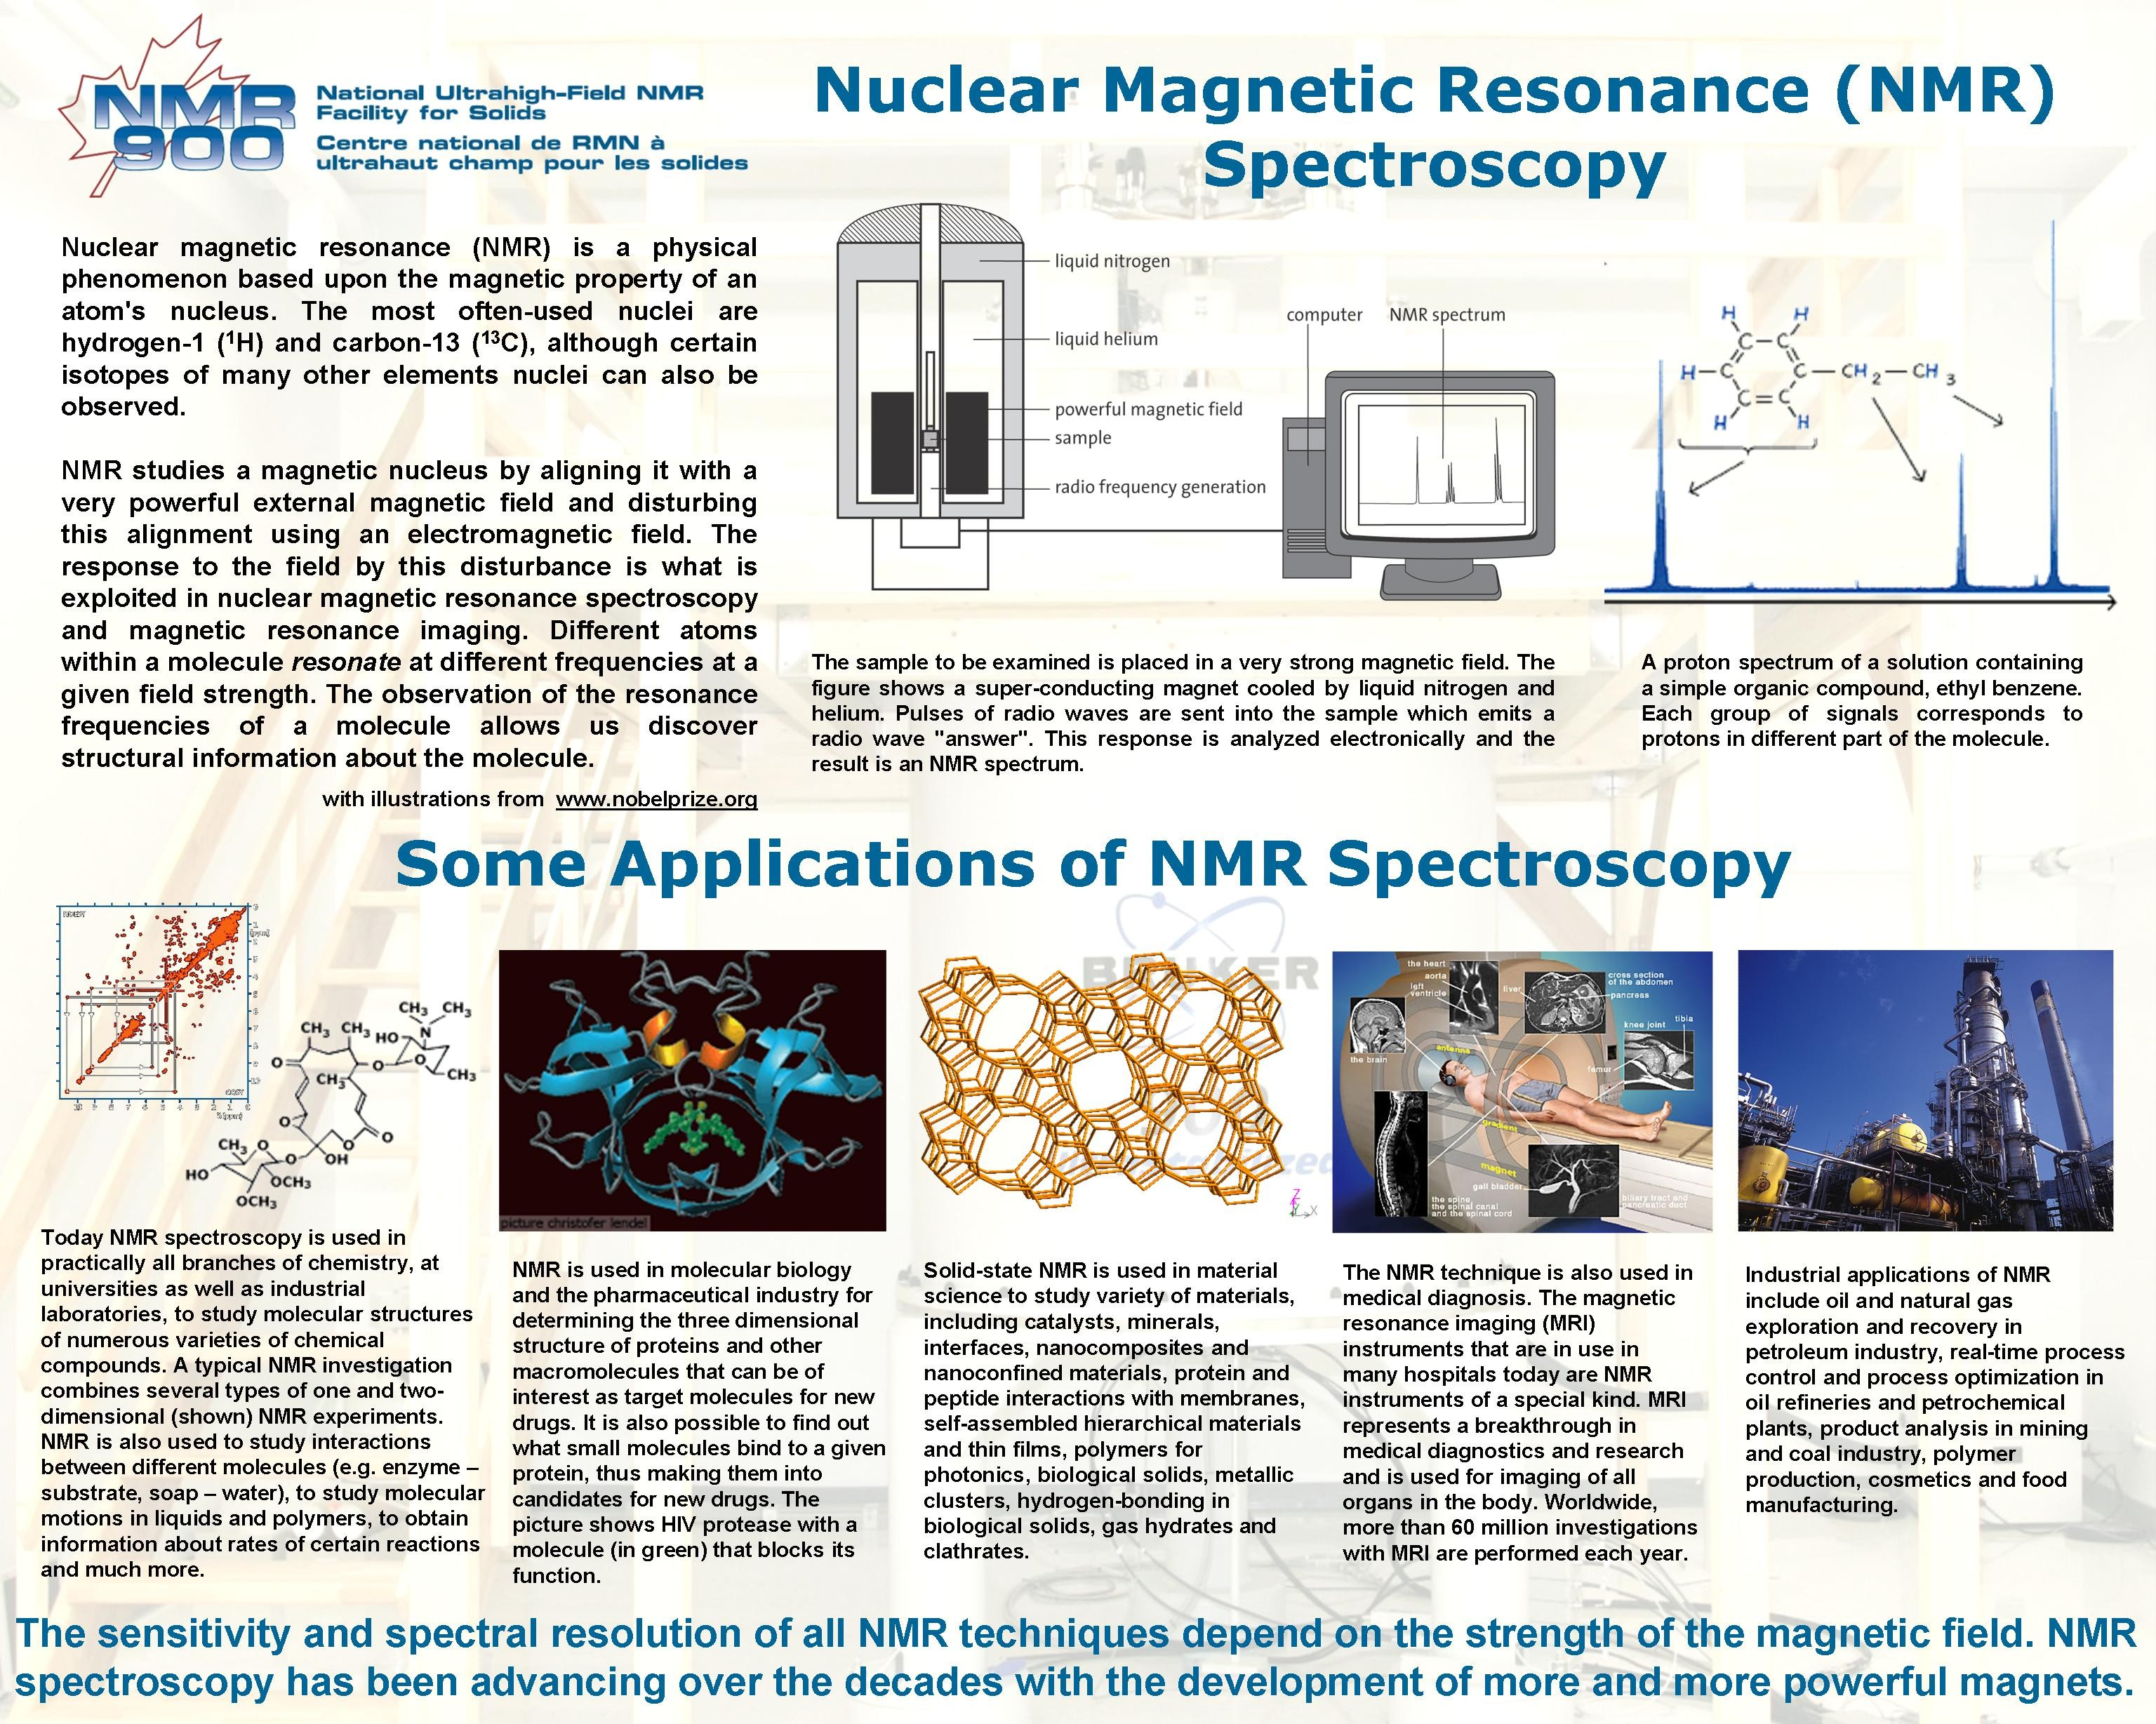 Research national ultra high field nmr facility for solids nuclear magnetic resonance nmr spectroscopy is widely used in chemistry for structural analysis in molecular biology and the pharmaceutical industry gamestrikefo Images